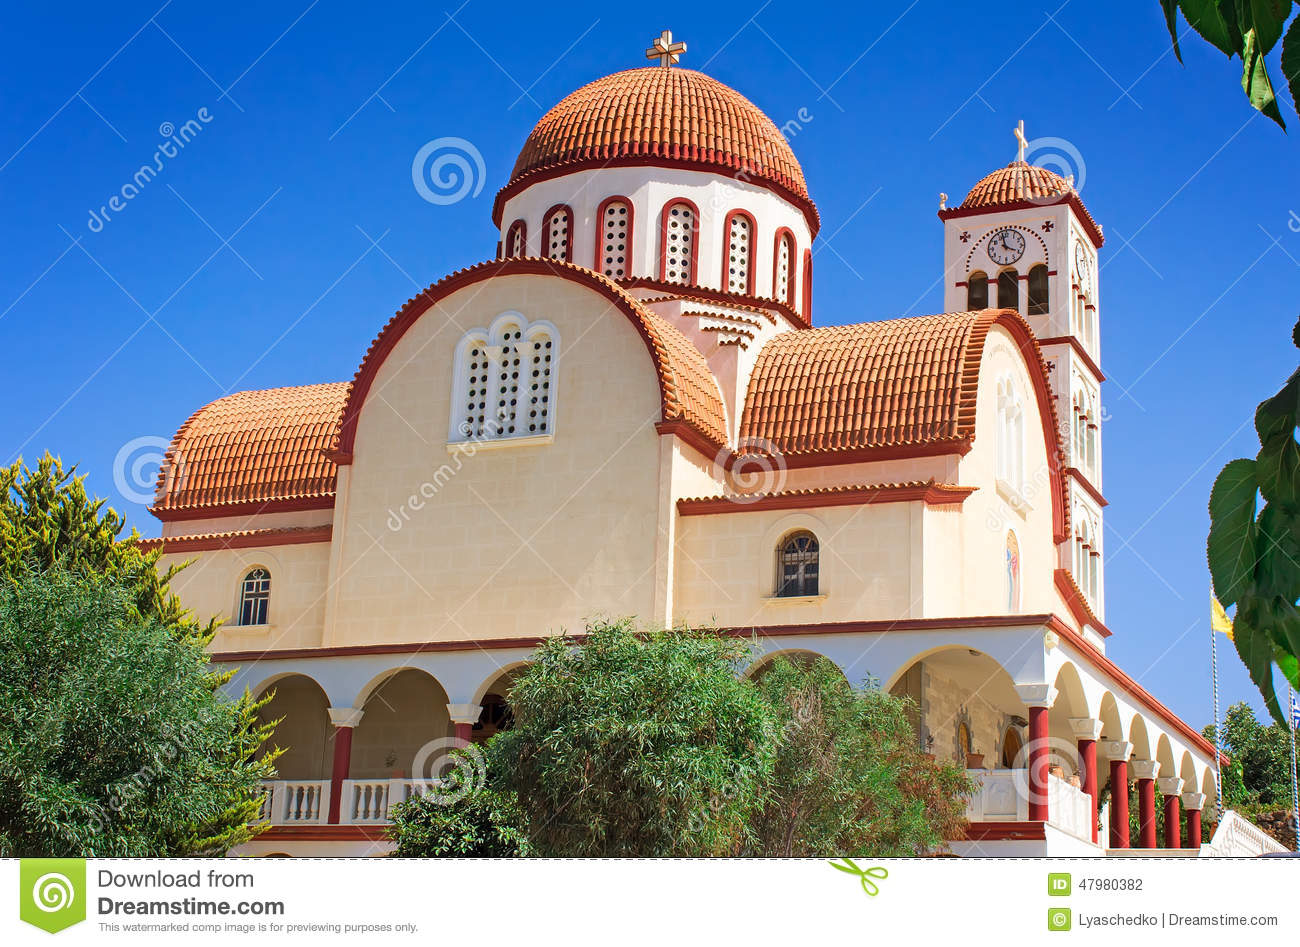 Orthodox Church In The Town Of Rethymno, Crete, Greece. Stock.